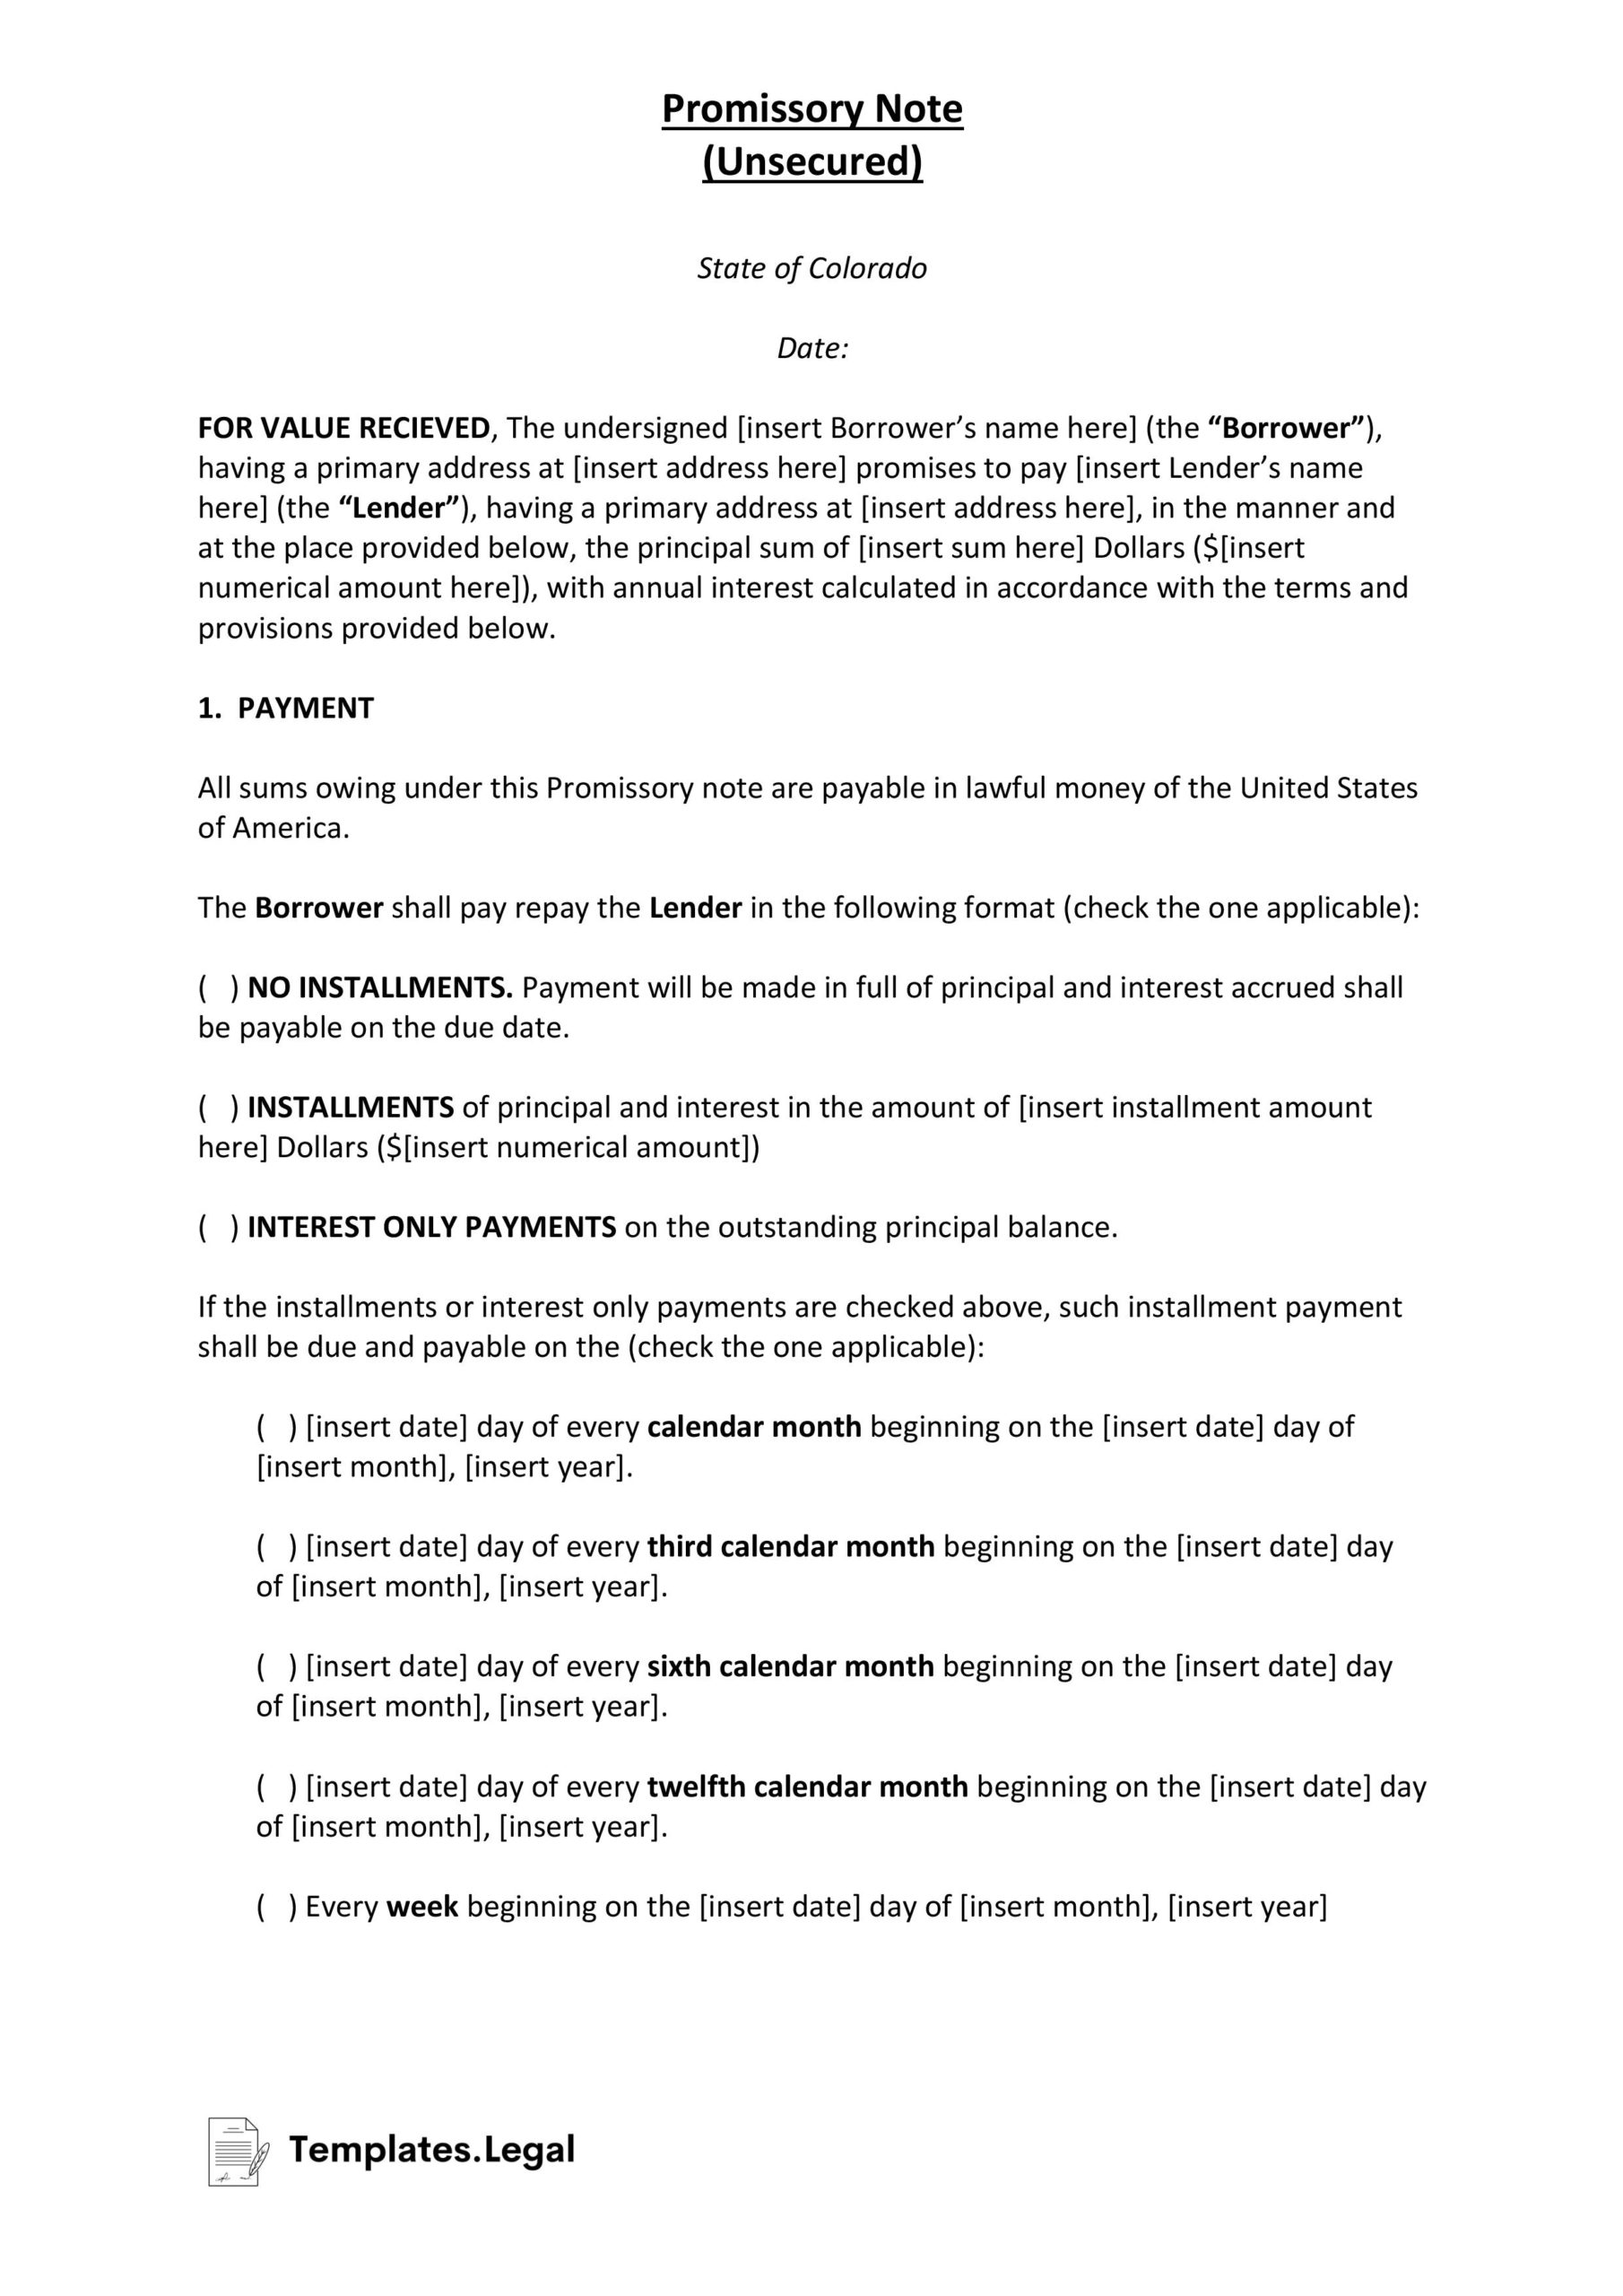 Colorado Unsecured Promissory Note - Templates.Legal